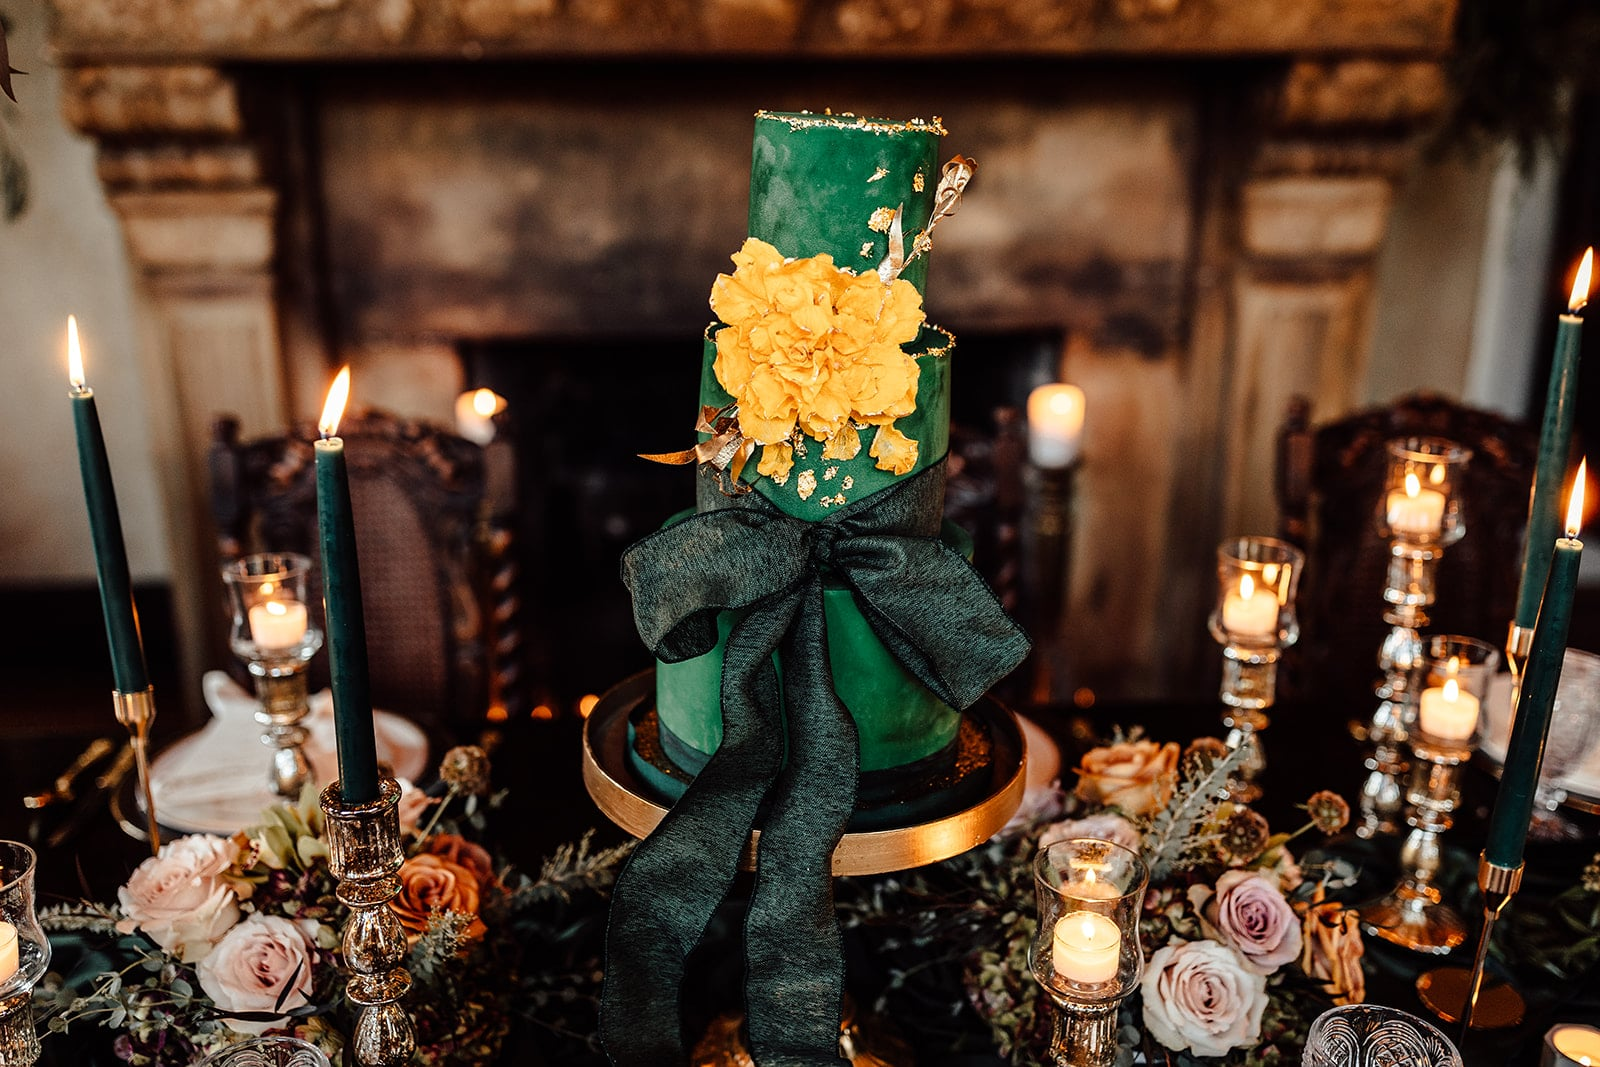 emerald green colored three tier wedding cake with big golden yellow flower on side and giant emerald green bow on the bottom tier on decorated tabletop